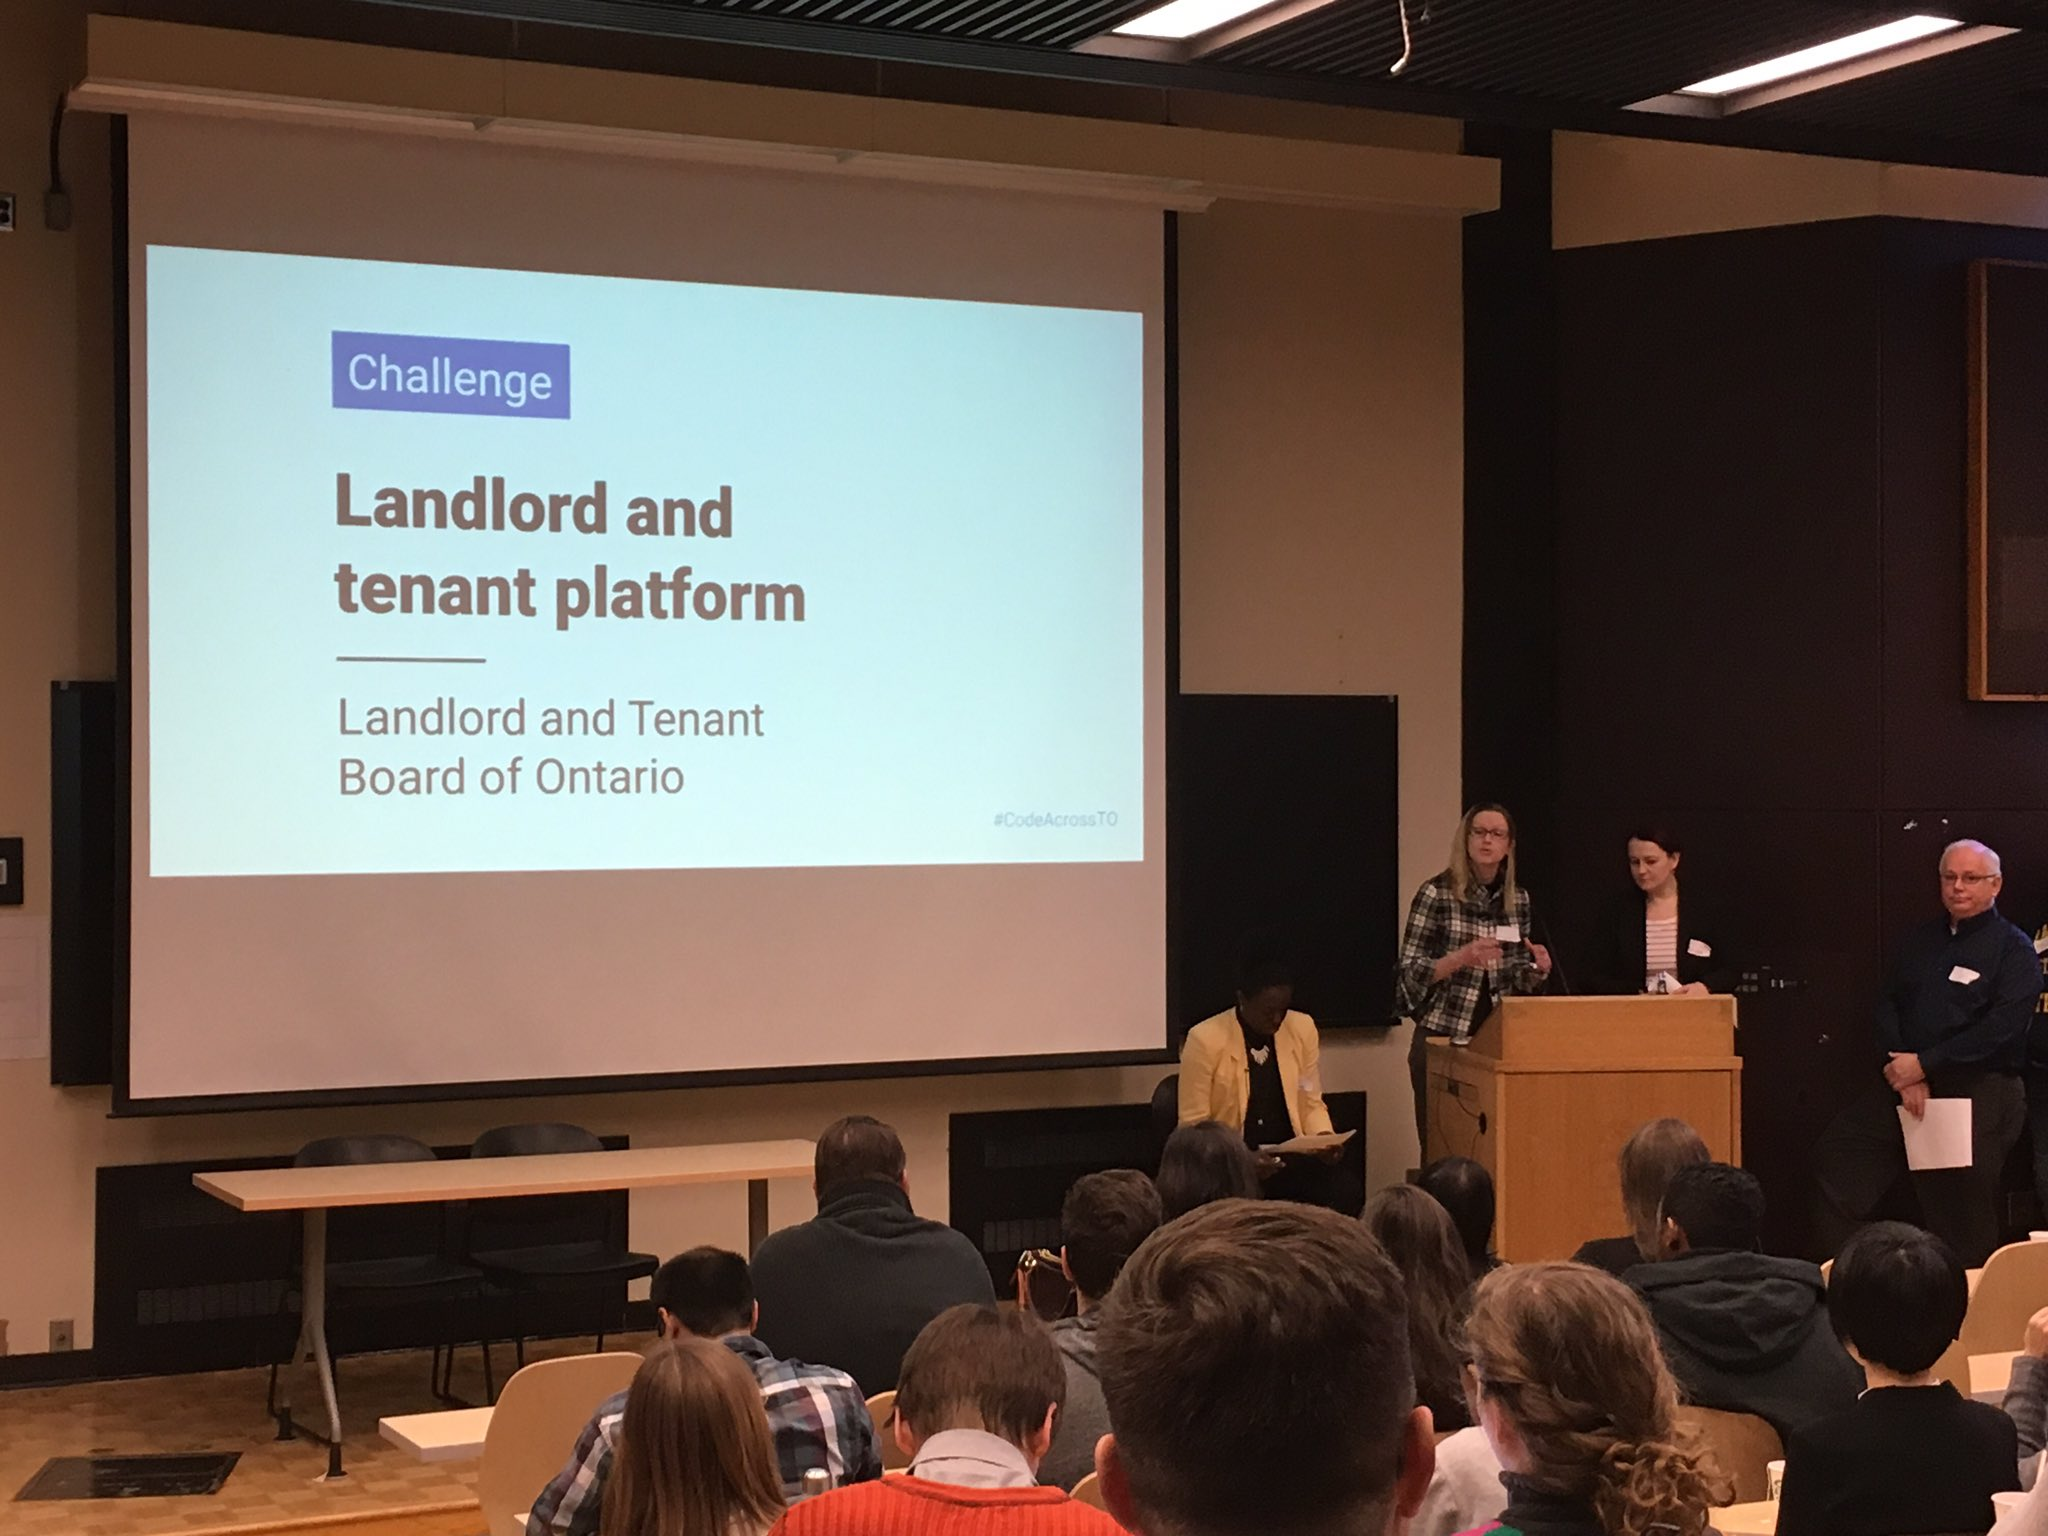 Landlord and Tenant Board of Ontario here with their challenge. Help tenants & landlords avoid having to appear before the LTB #CodeAcrossTO https://t.co/3SmQK4ZGom